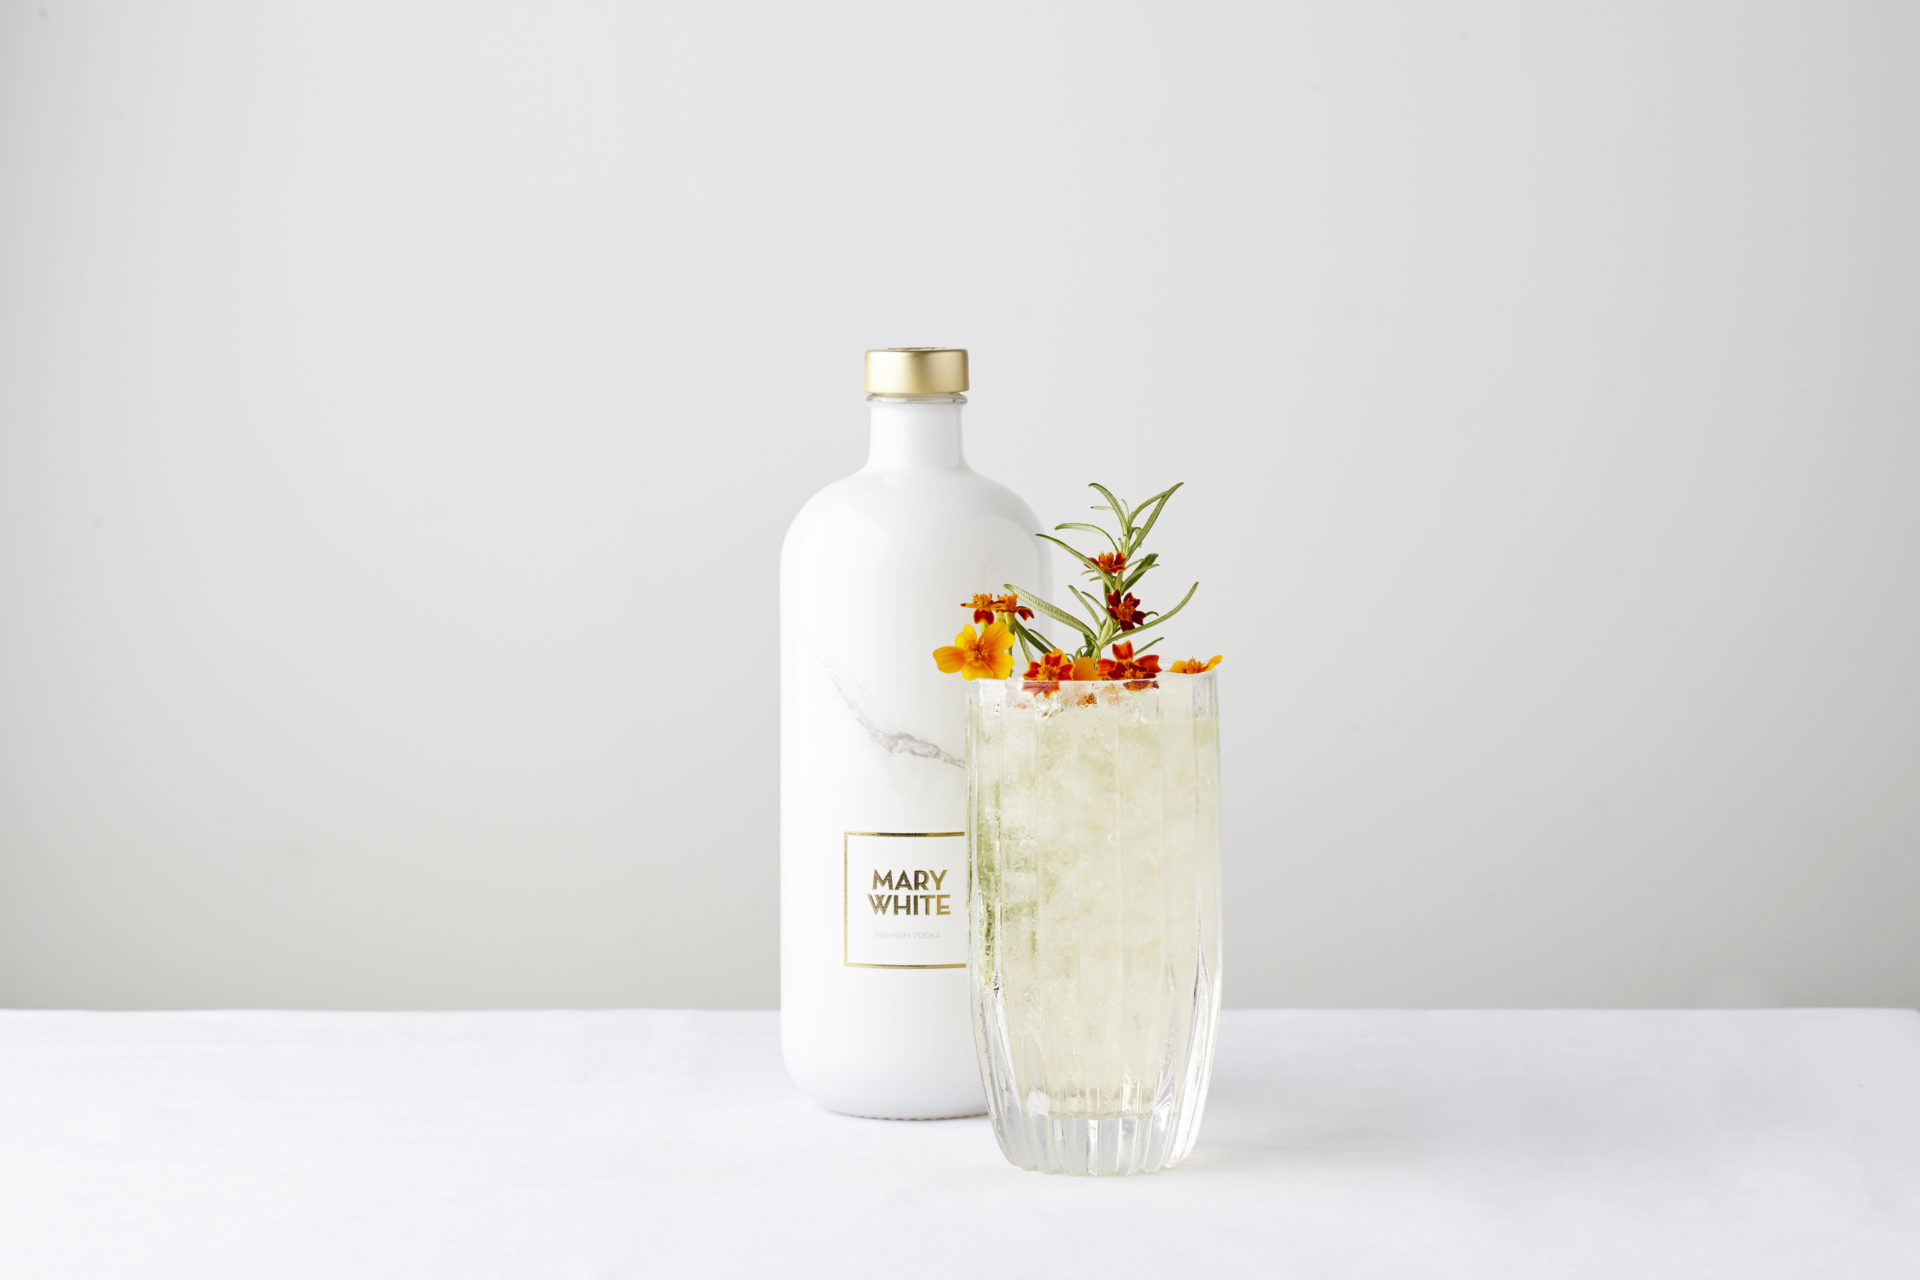 Mary white gin bottle